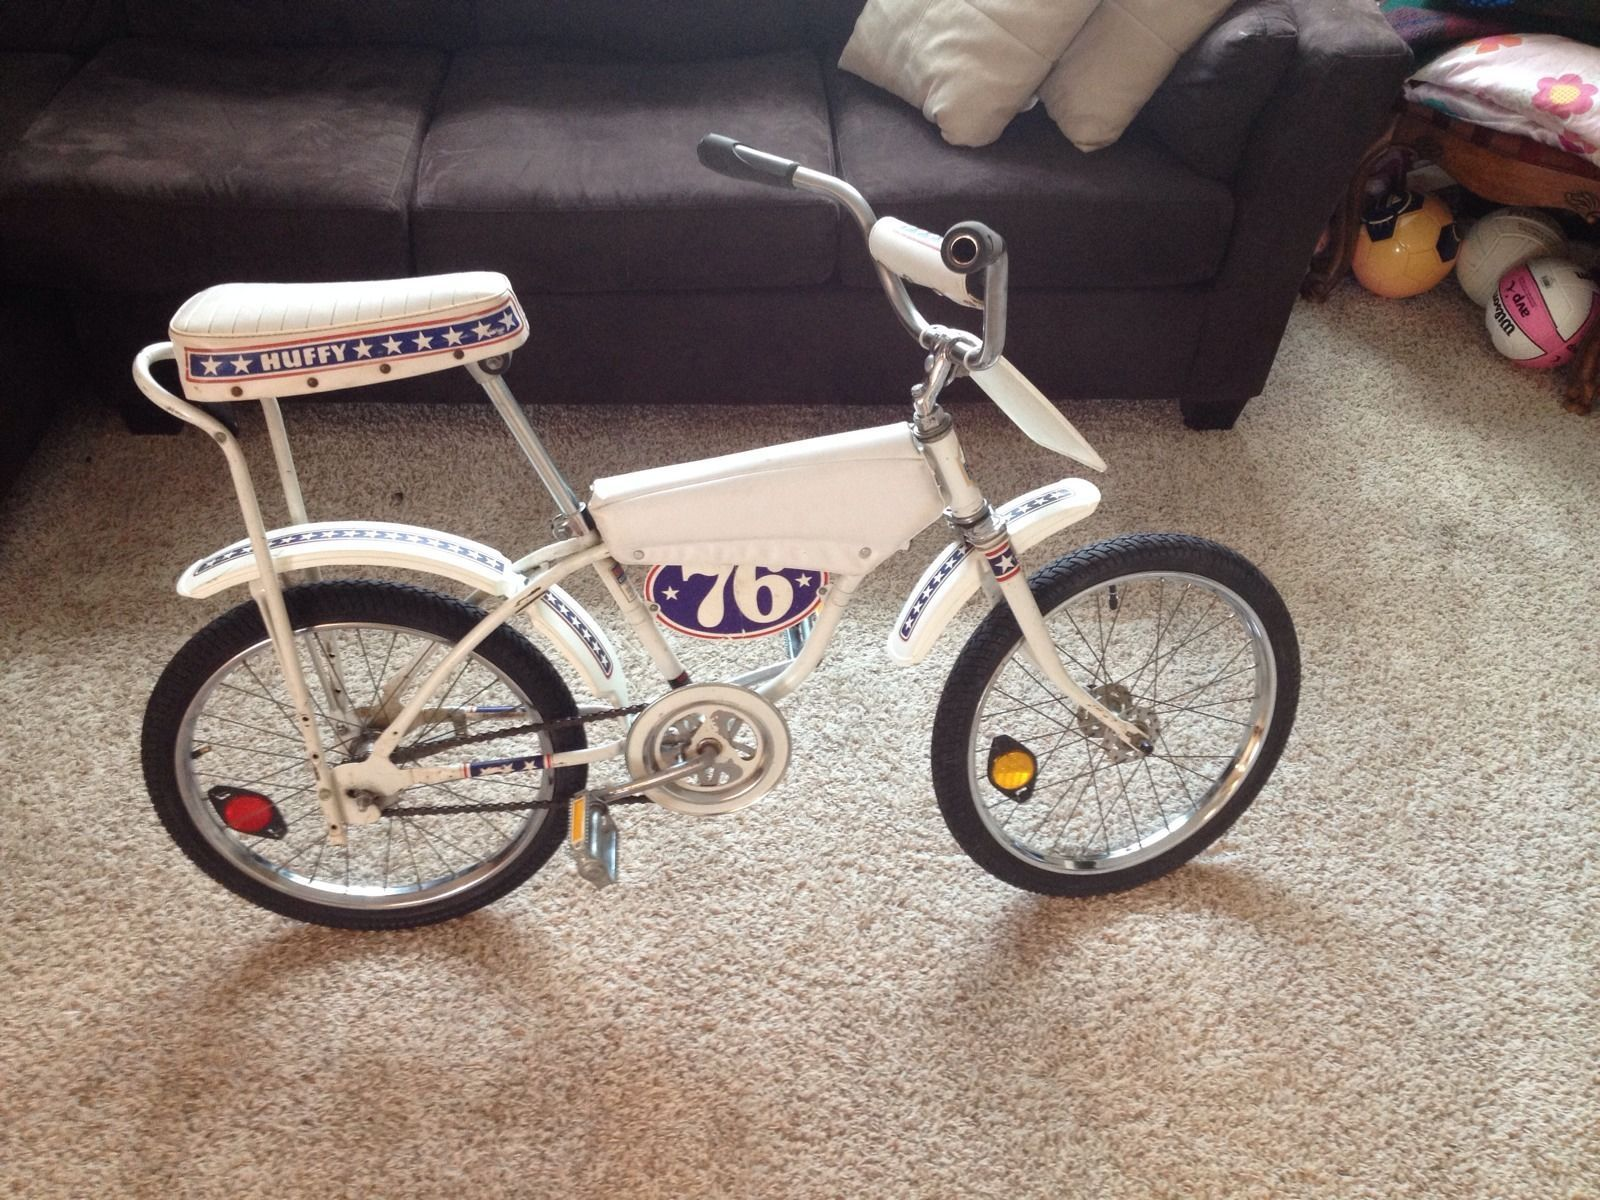 Famous Evel Knievel Bike At Auction: Old School Vintage 1976 Huffy Thunder Star Bike BMX Evel